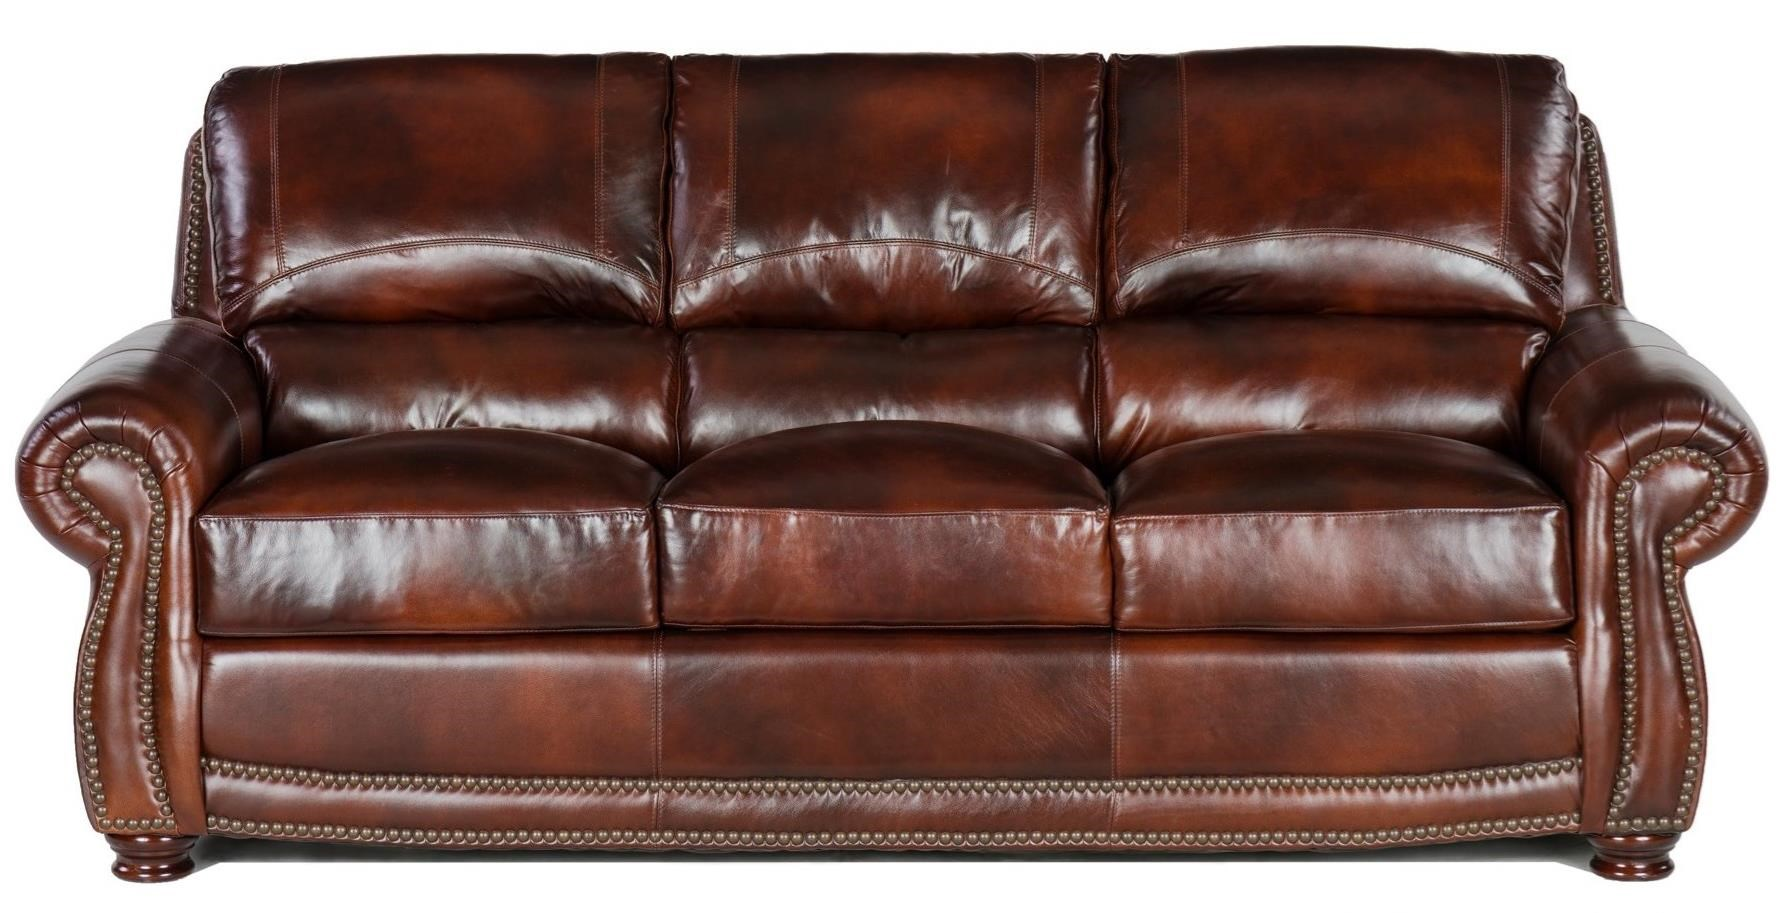 4650 Sofa by USA Premium Leather at Wilson's Furniture